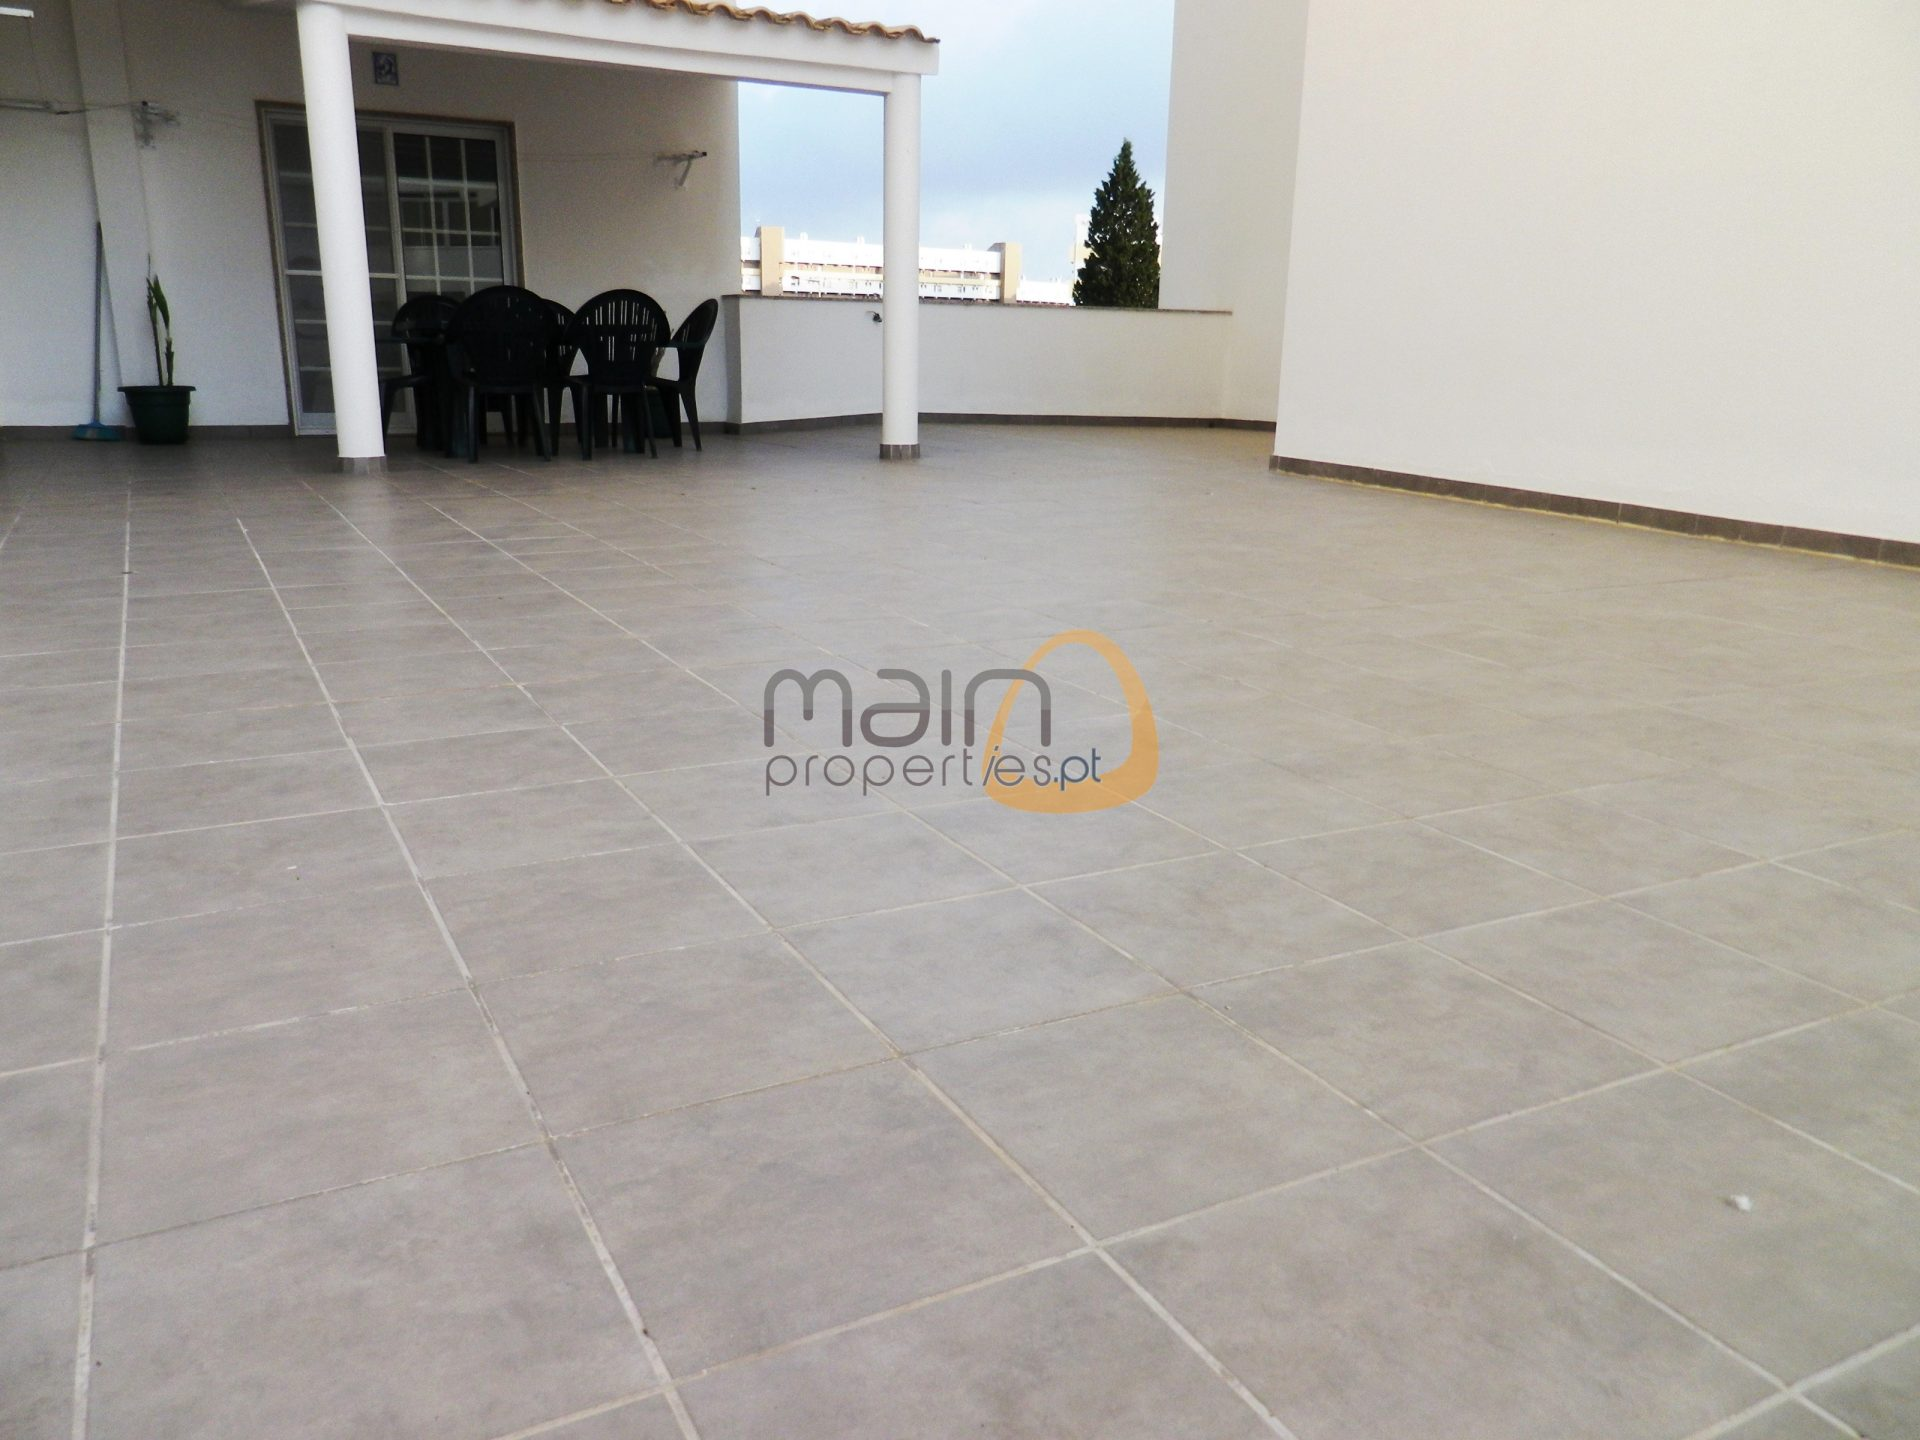 Apartment with 4 bedrooms, large terrace, in the center of Faro